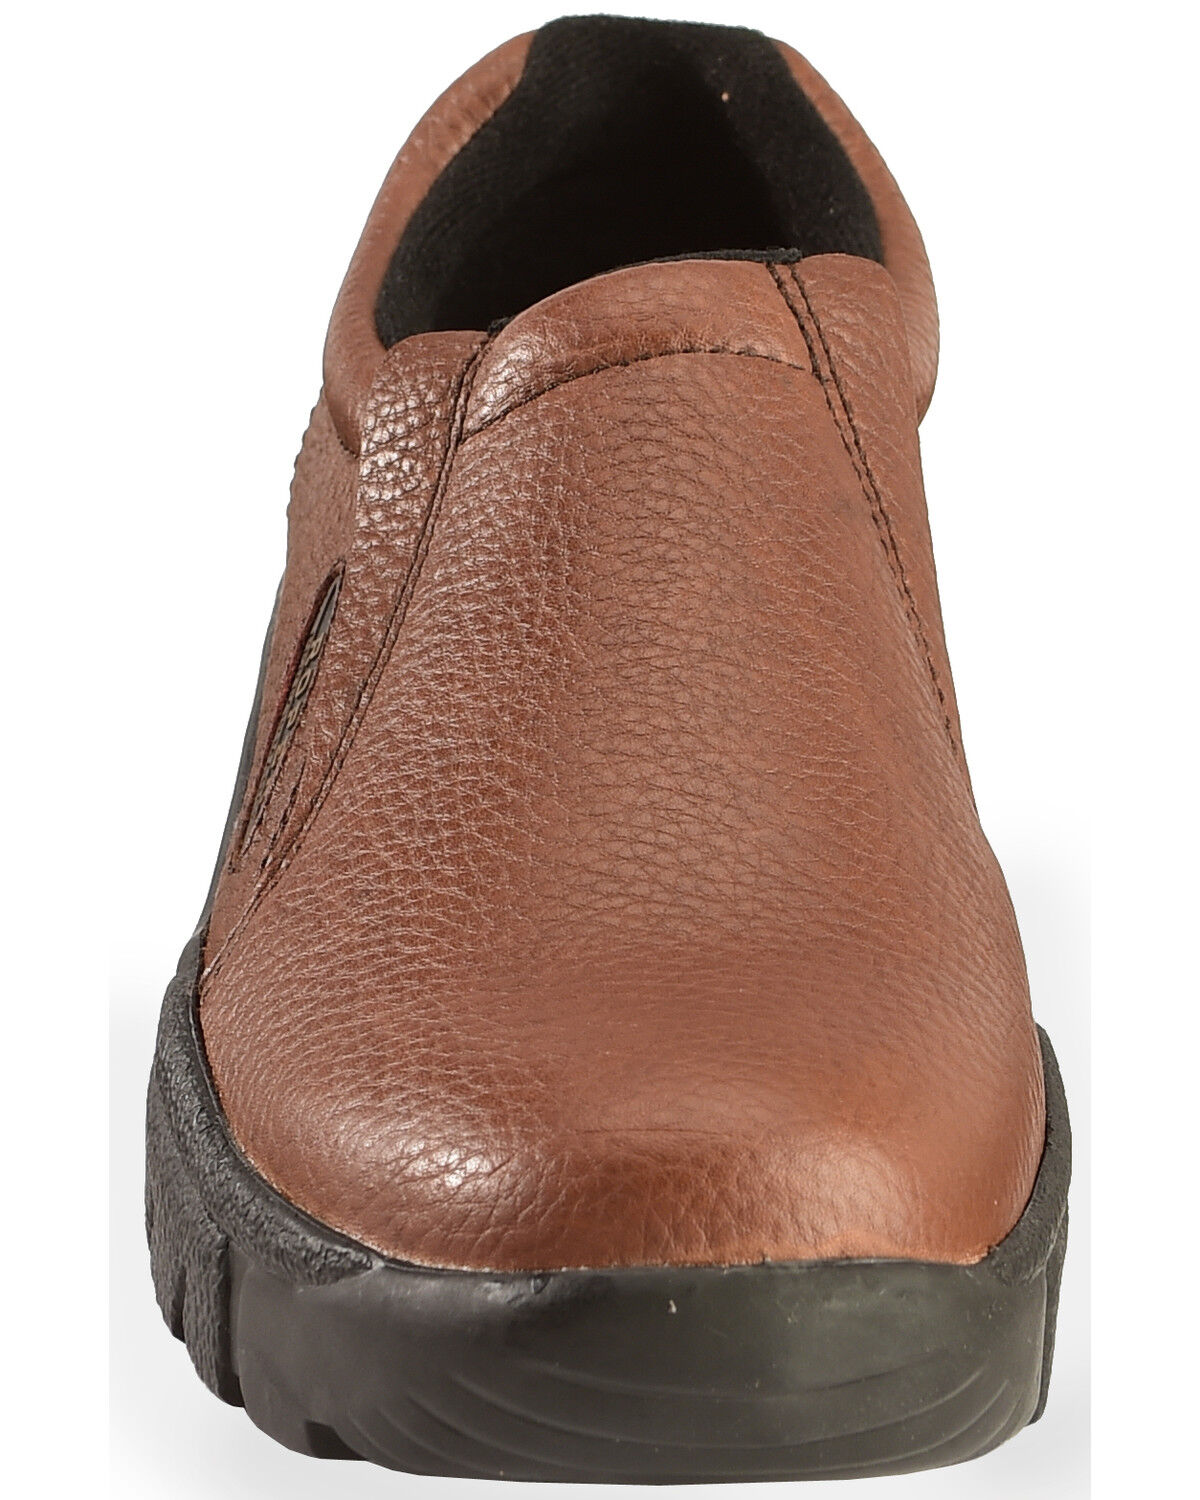 Roper Performance Slip-On Casual Shoes